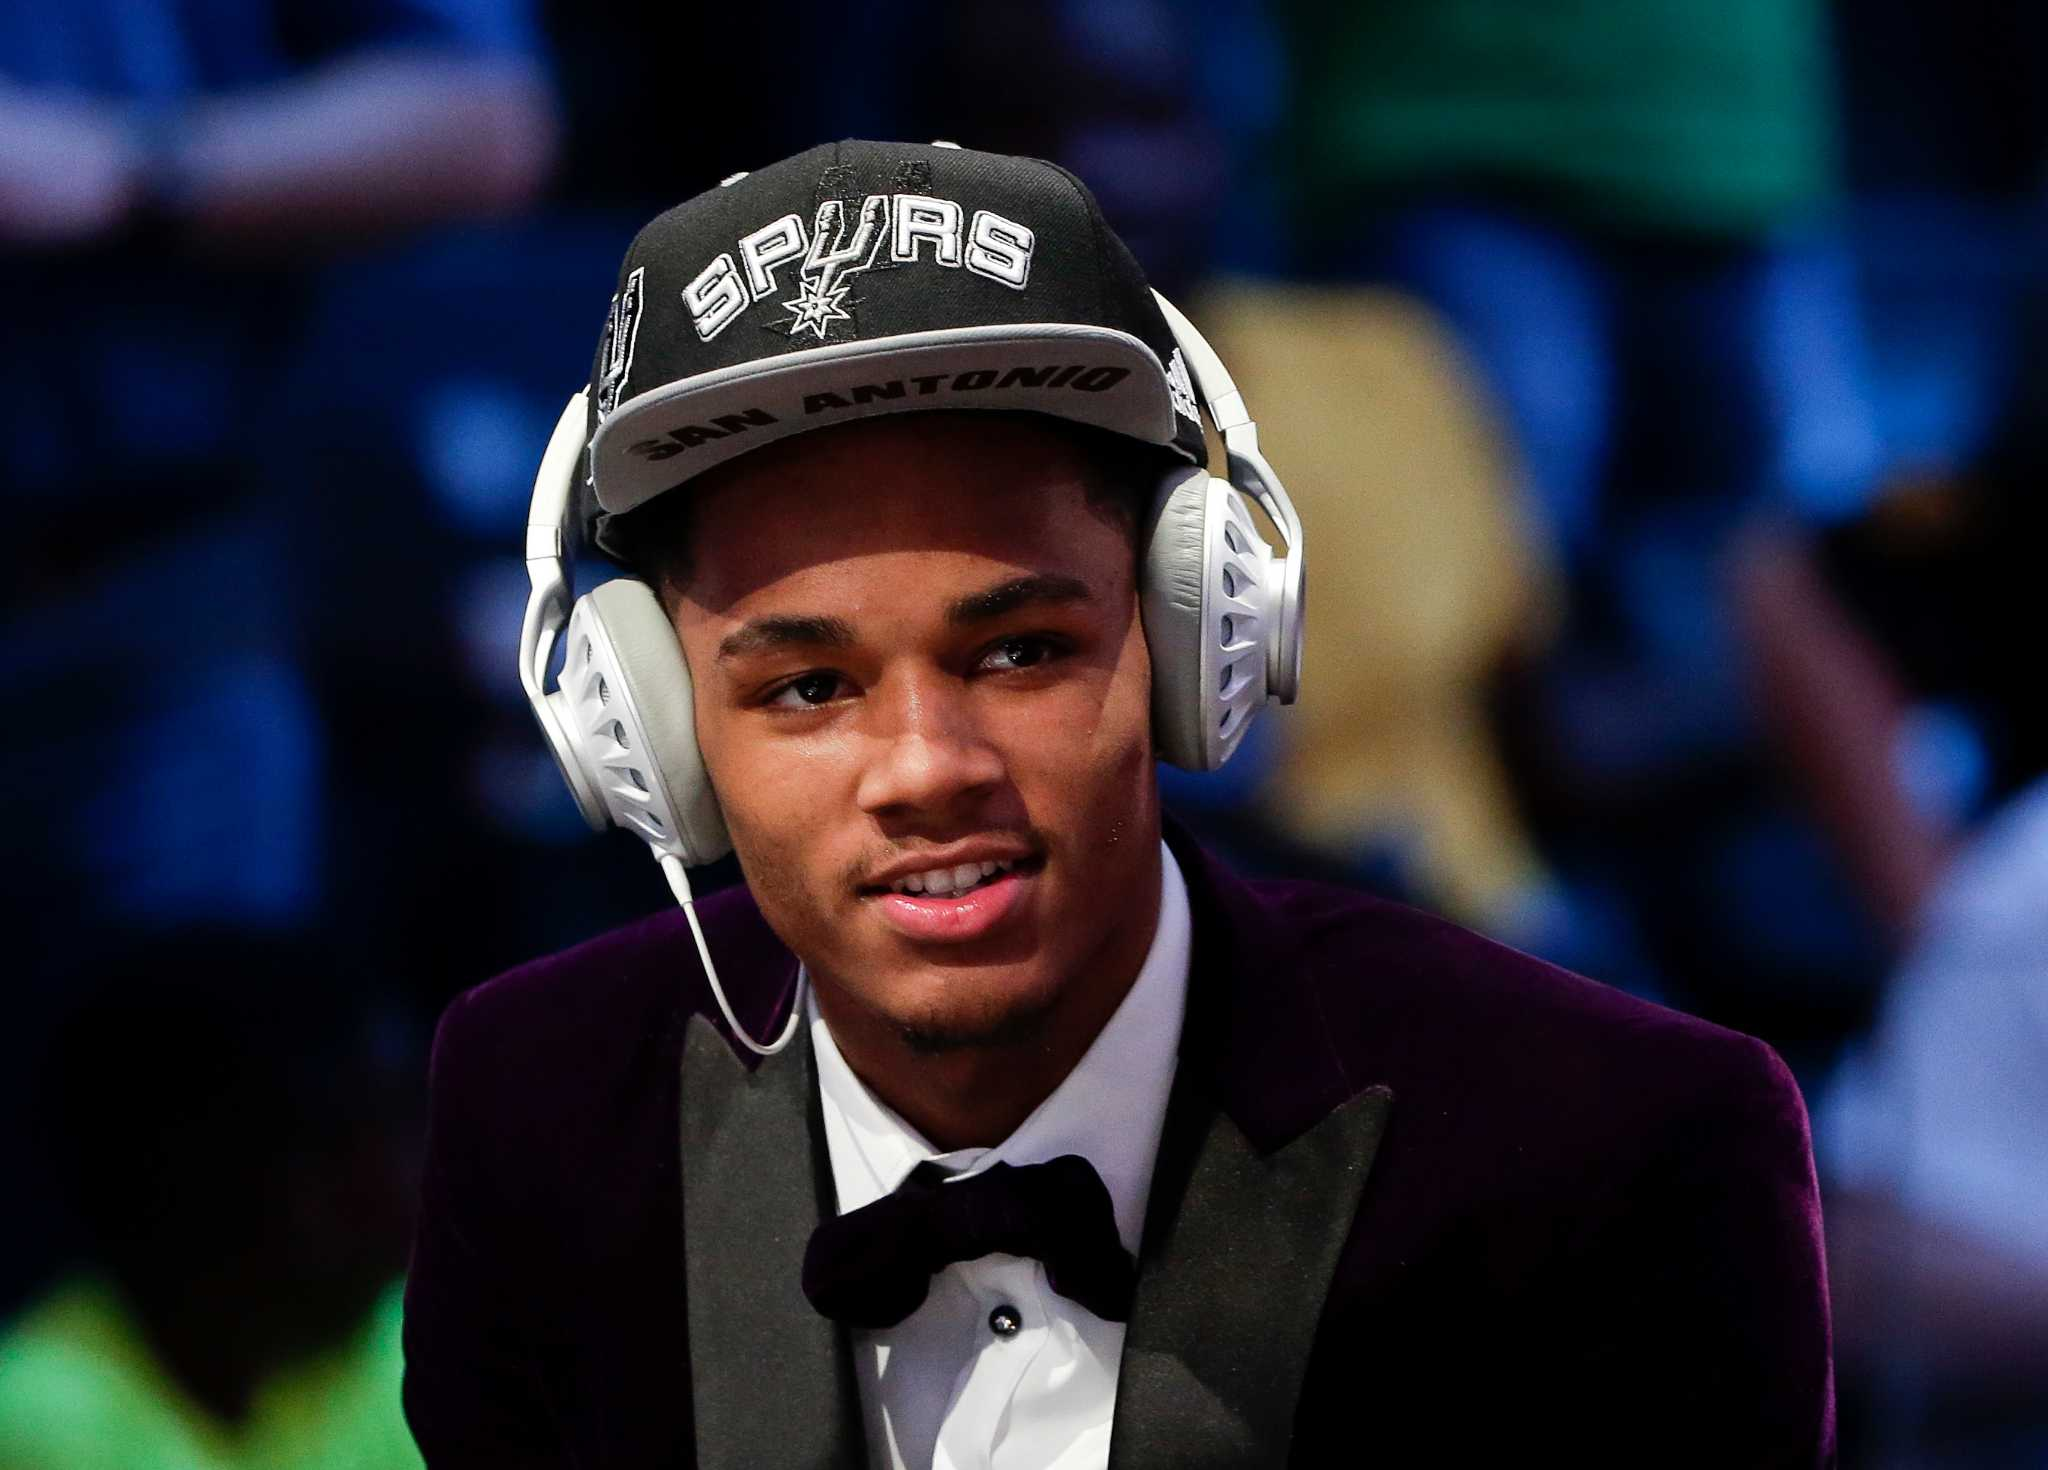 5472k Followers 123 Following 47 Posts See Instagram photos and videos from Dejounte Murray dejountemurray